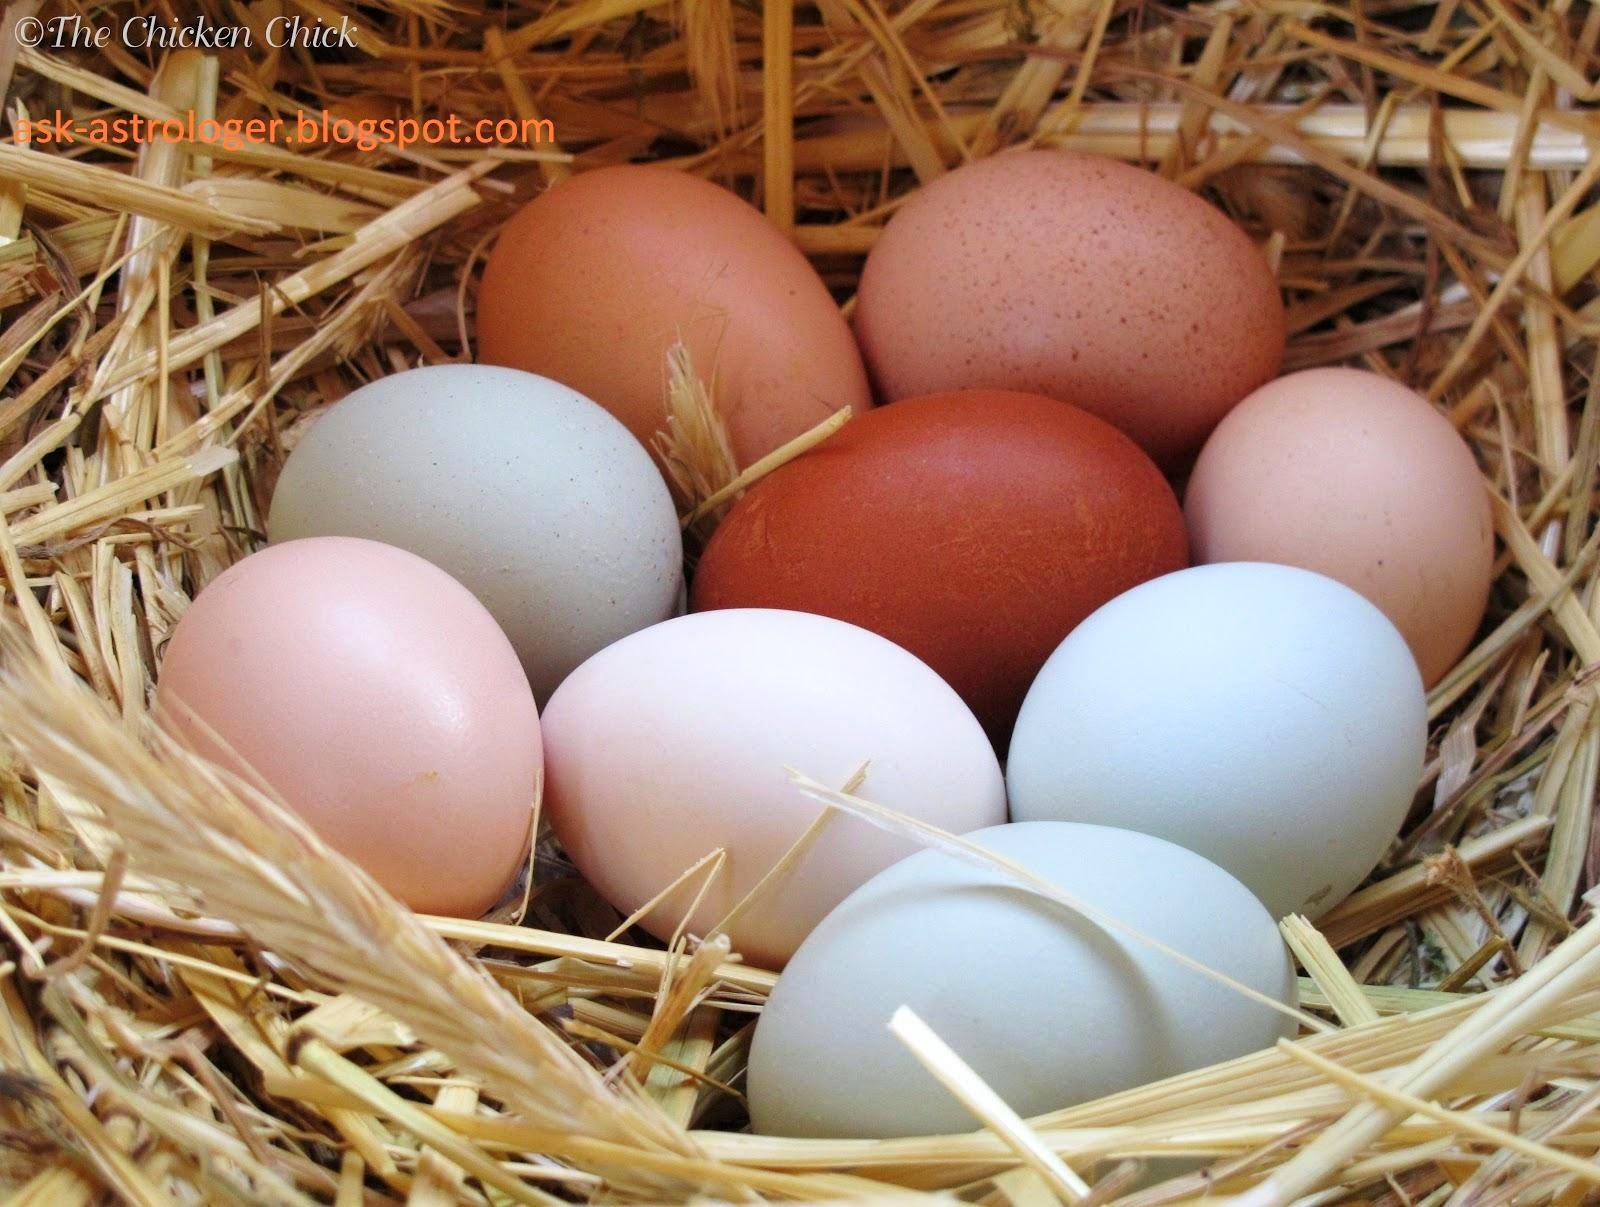 Why eggs are in different shapes?